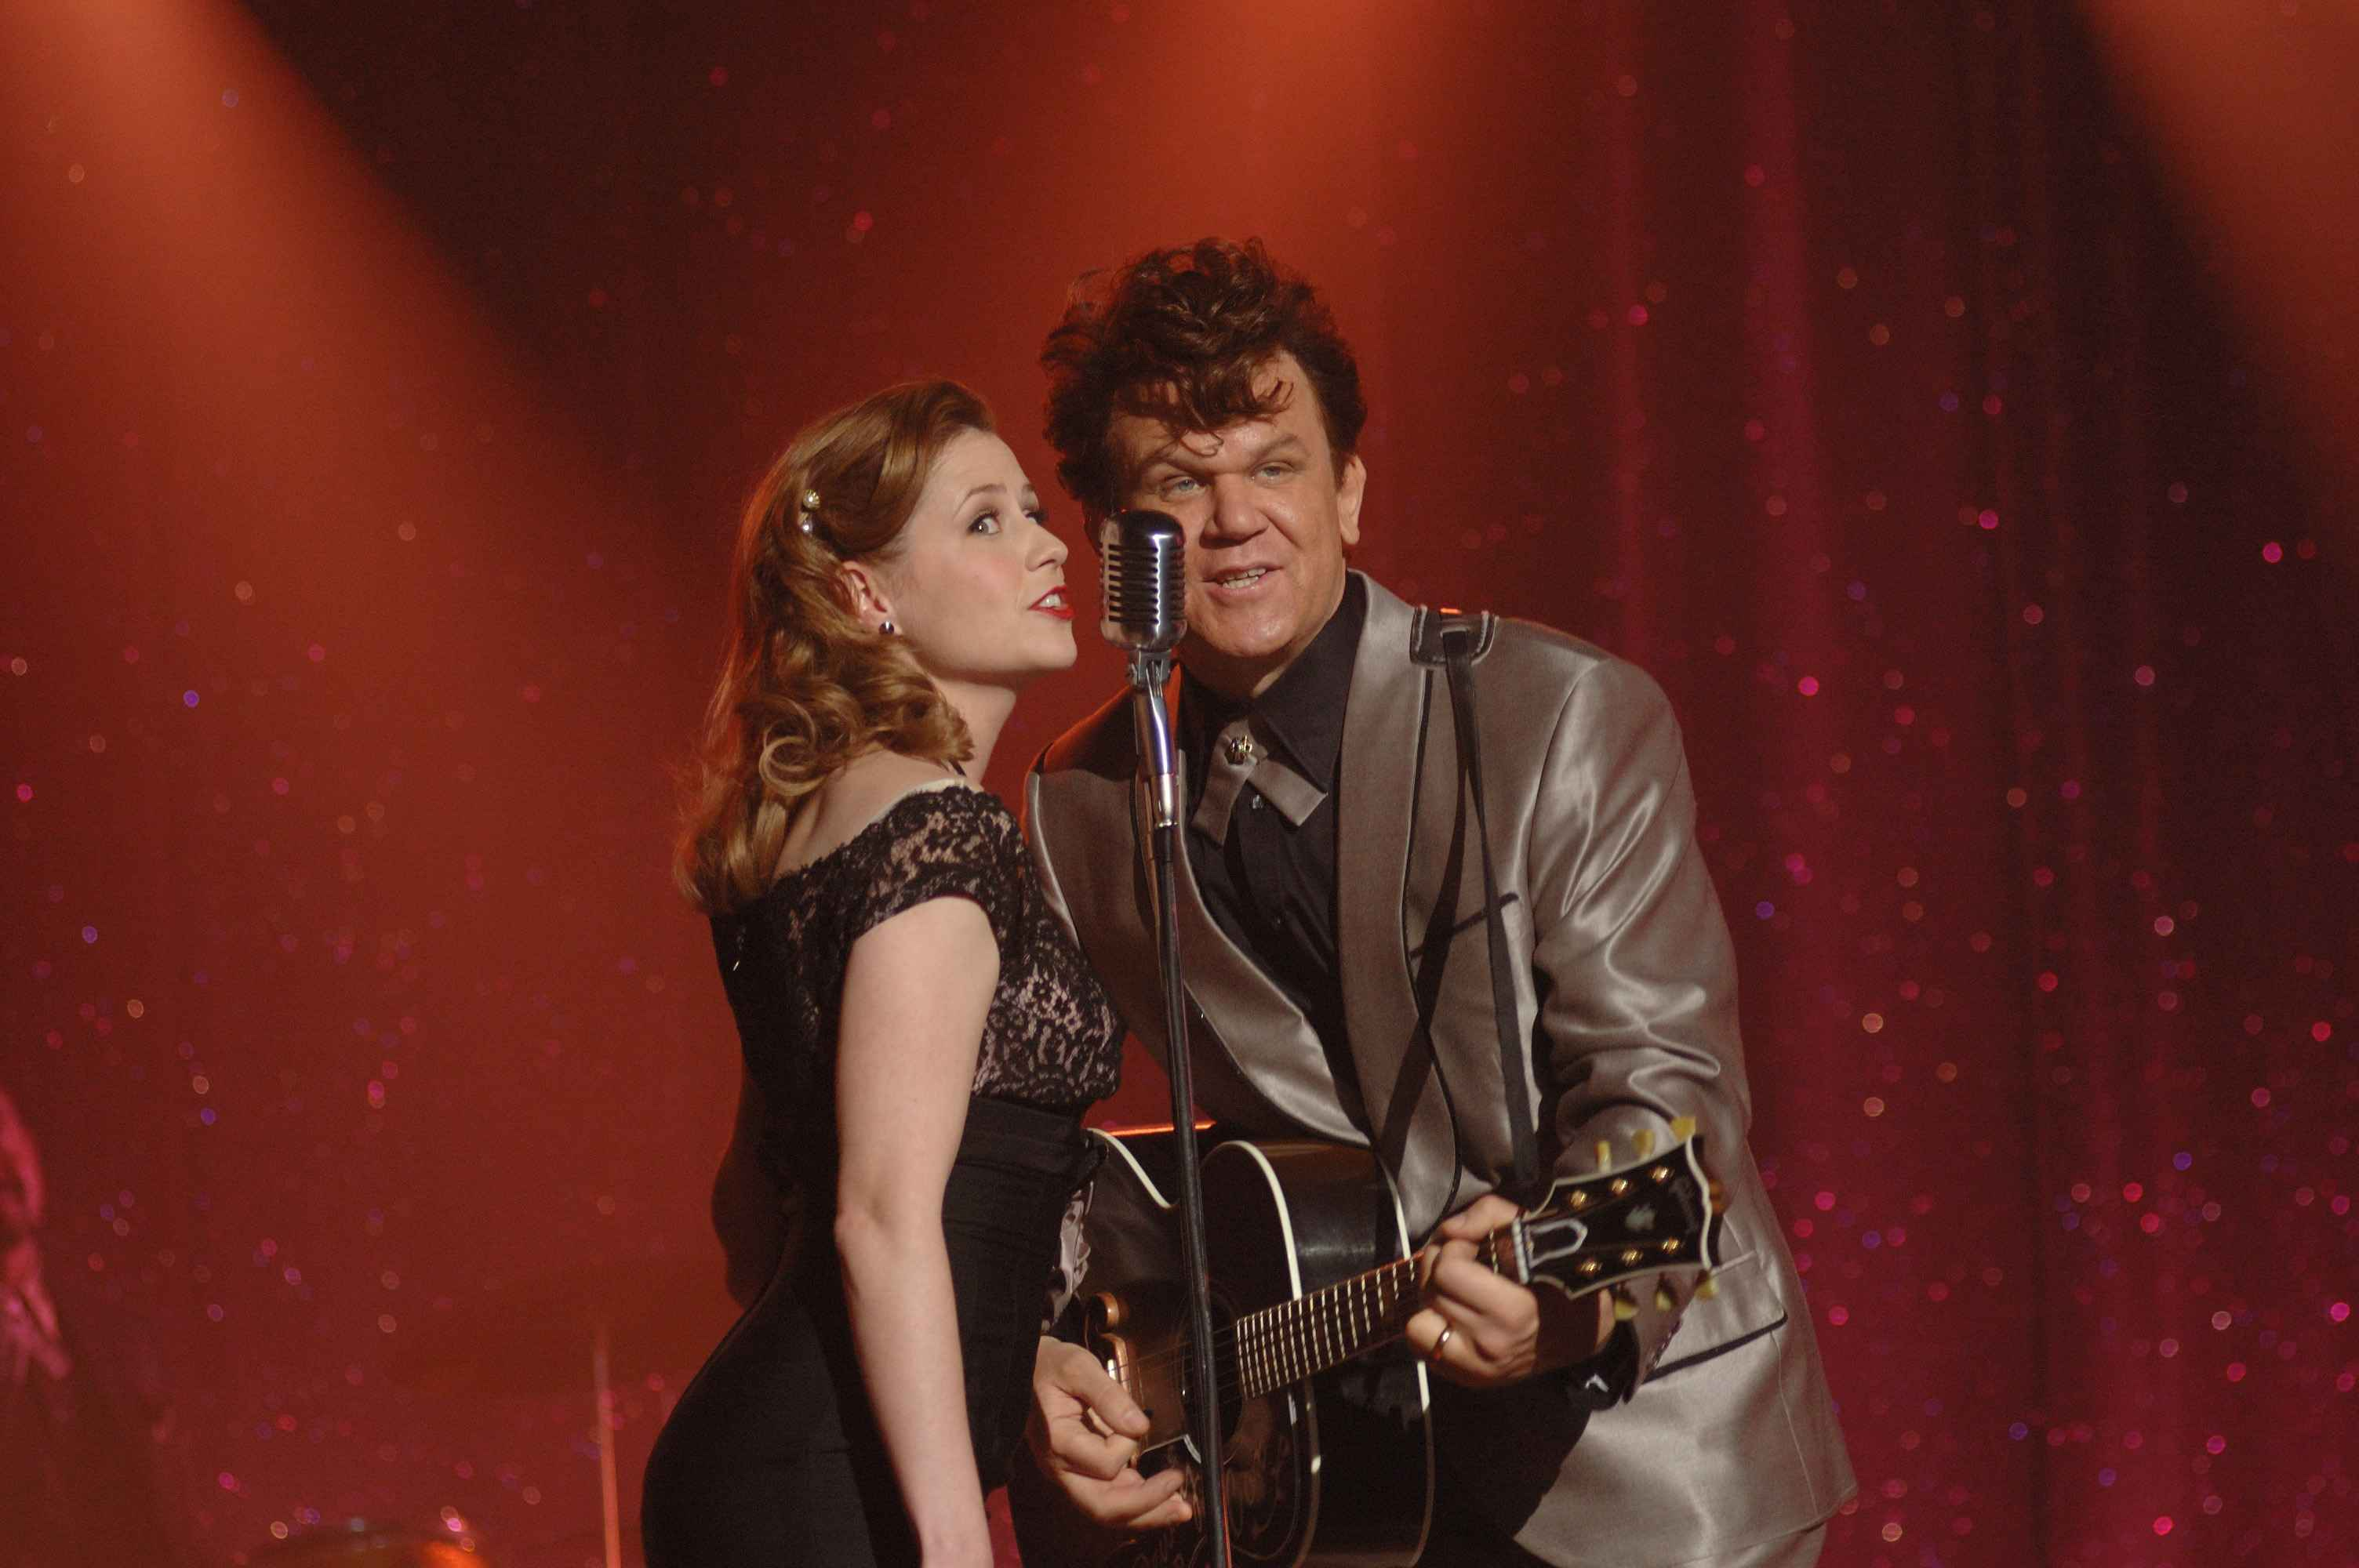 jenna fischer John reilly HD Wallpaper